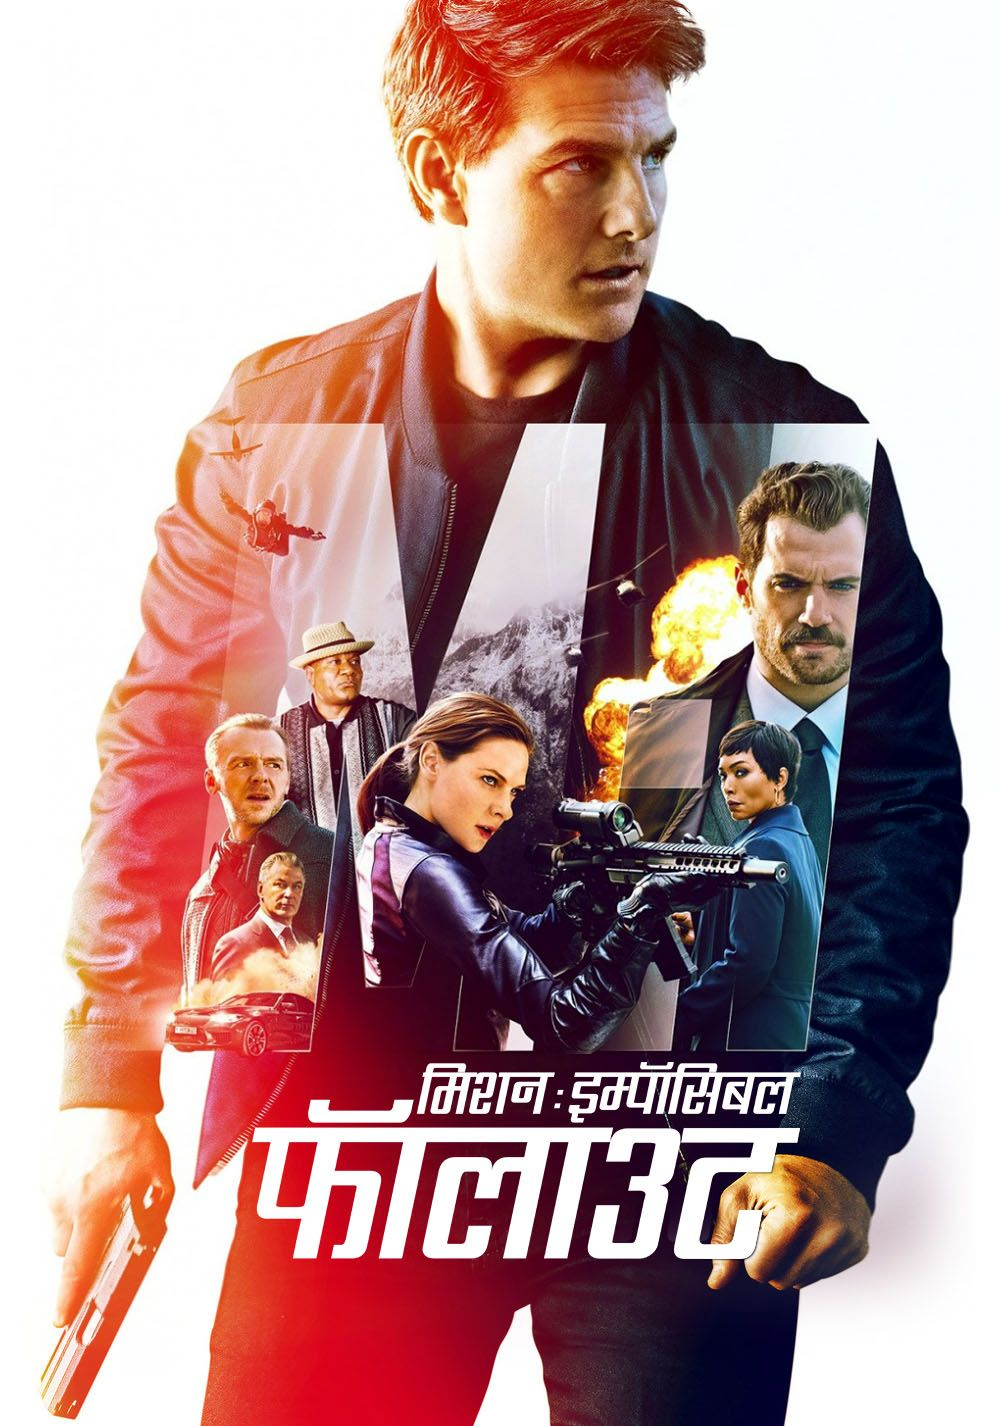 Mission: Impossible – Fallout (2018) in Hindi Download full Movie & Watch Online